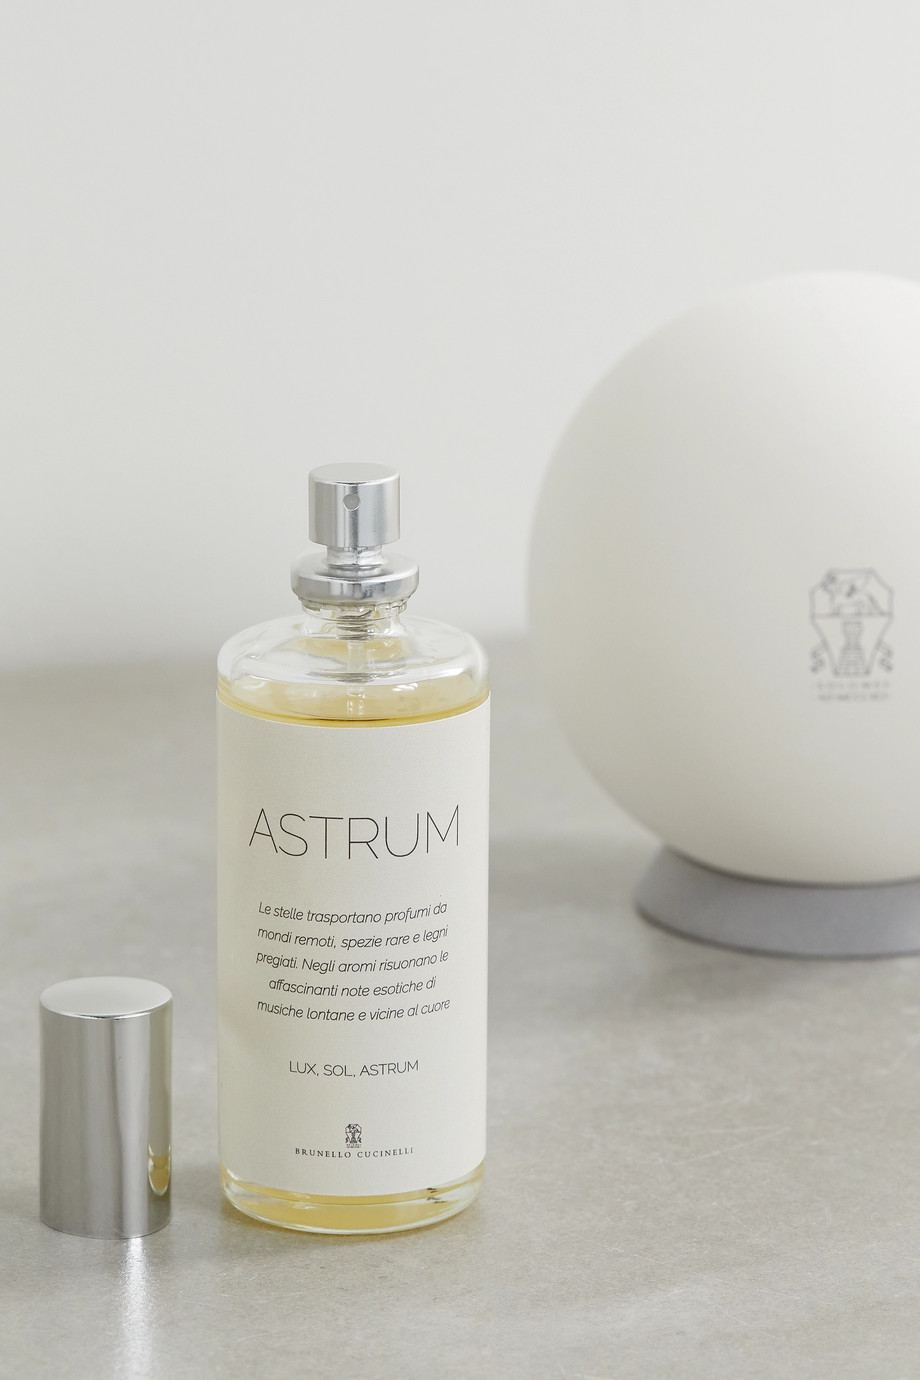 BRUNELLO CUCINELLI Astrum Sphere diffuser and refill set